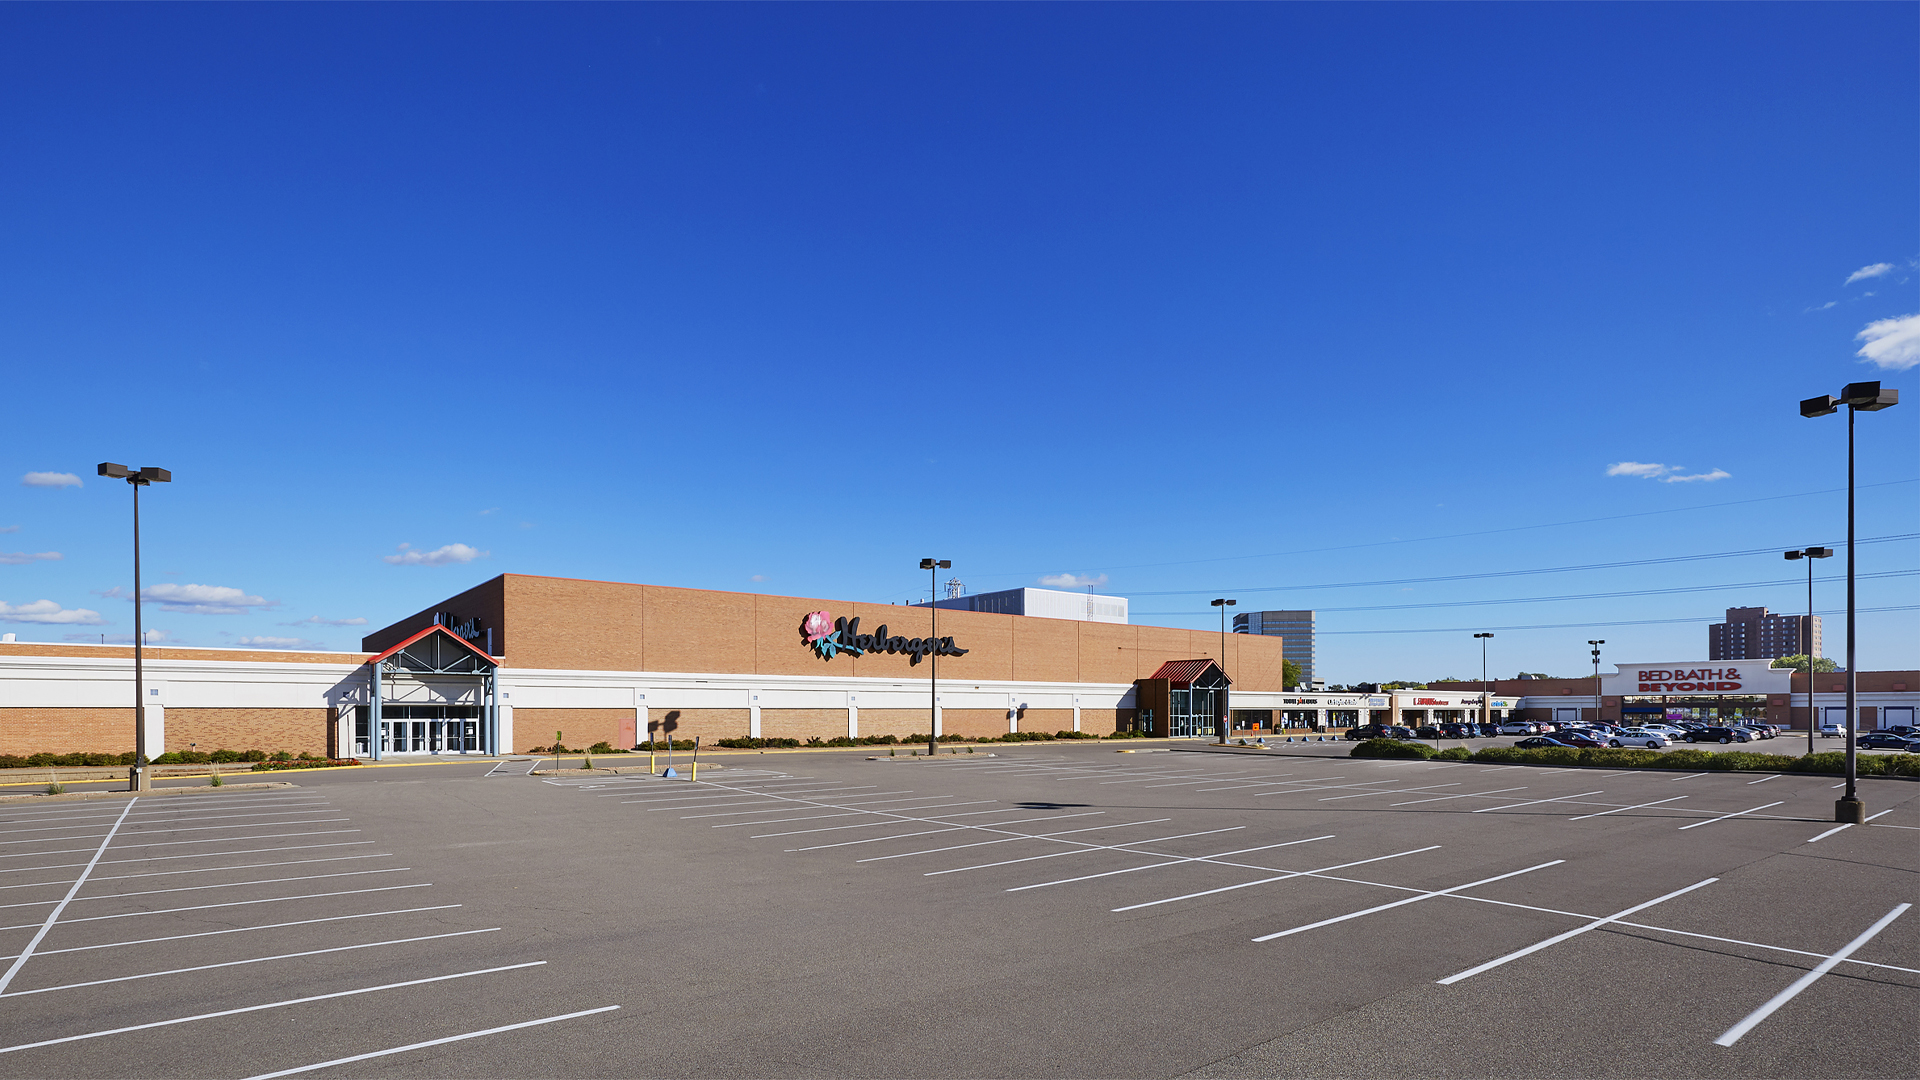 Southtown Shopping Retail Center Bloomington MN eastern anchor store previously Herbergers